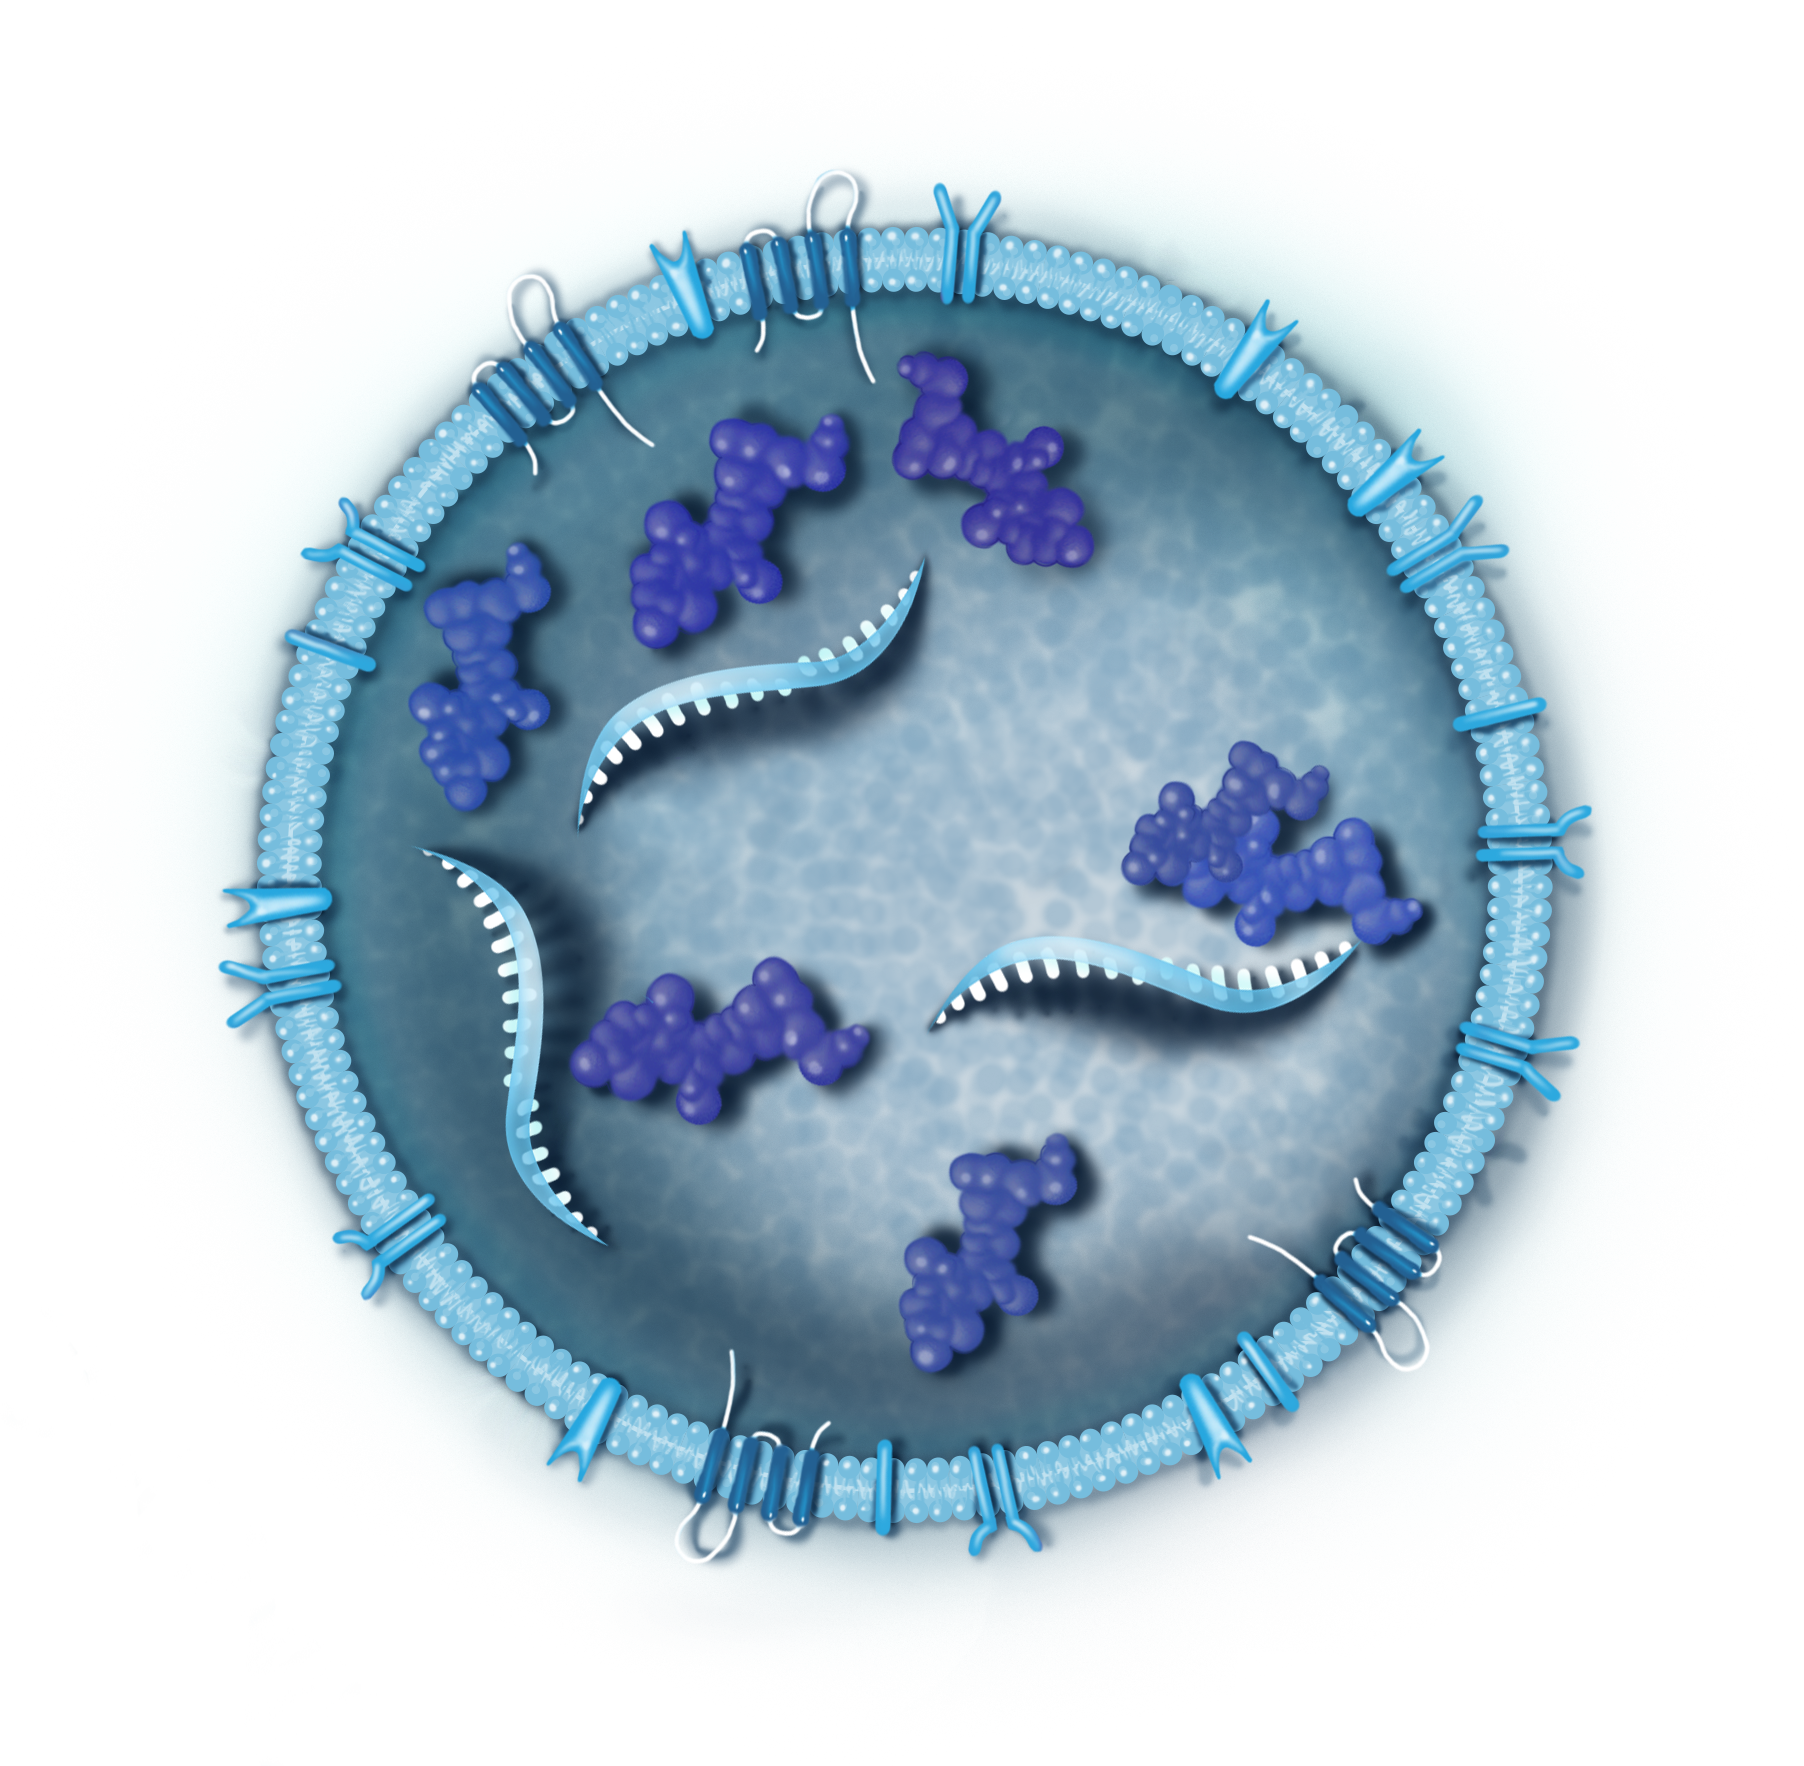 Generic exosome illustration